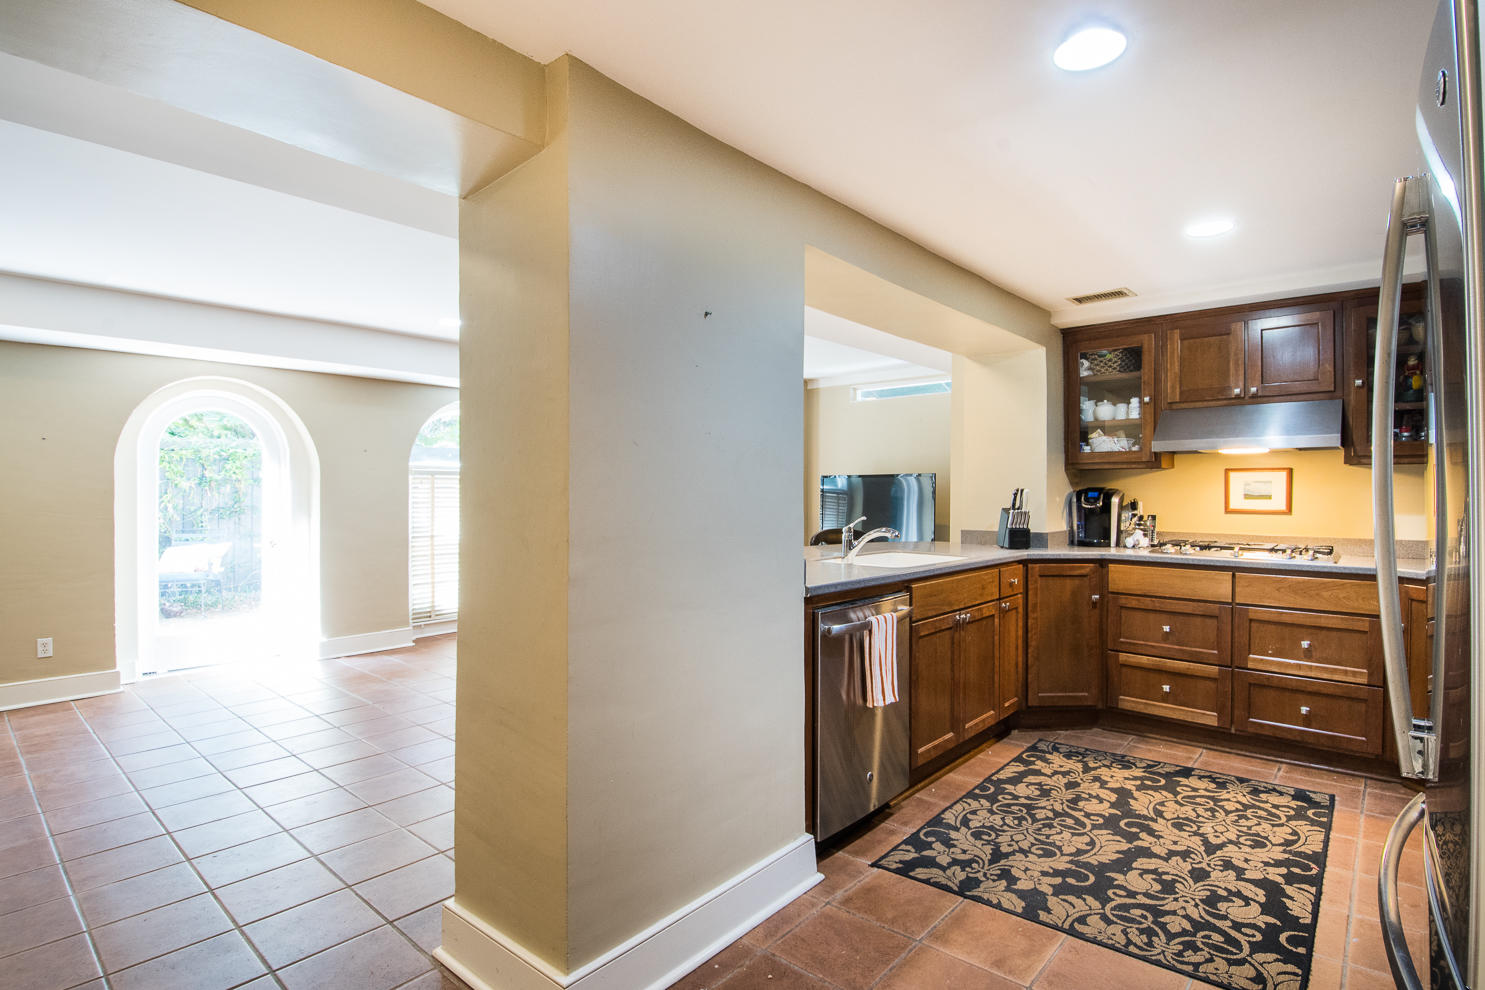 South of Broad Homes For Sale - 1 Prices, Charleston, SC - 49